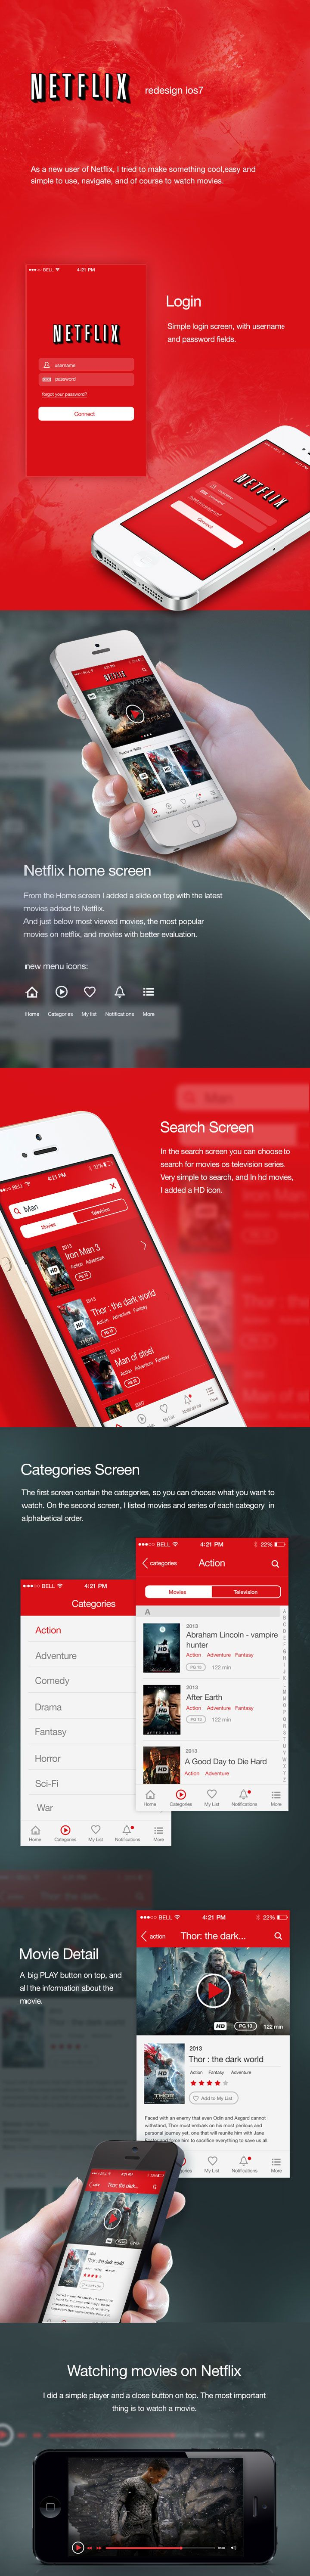 Netflix - redesign for iOS7 concept